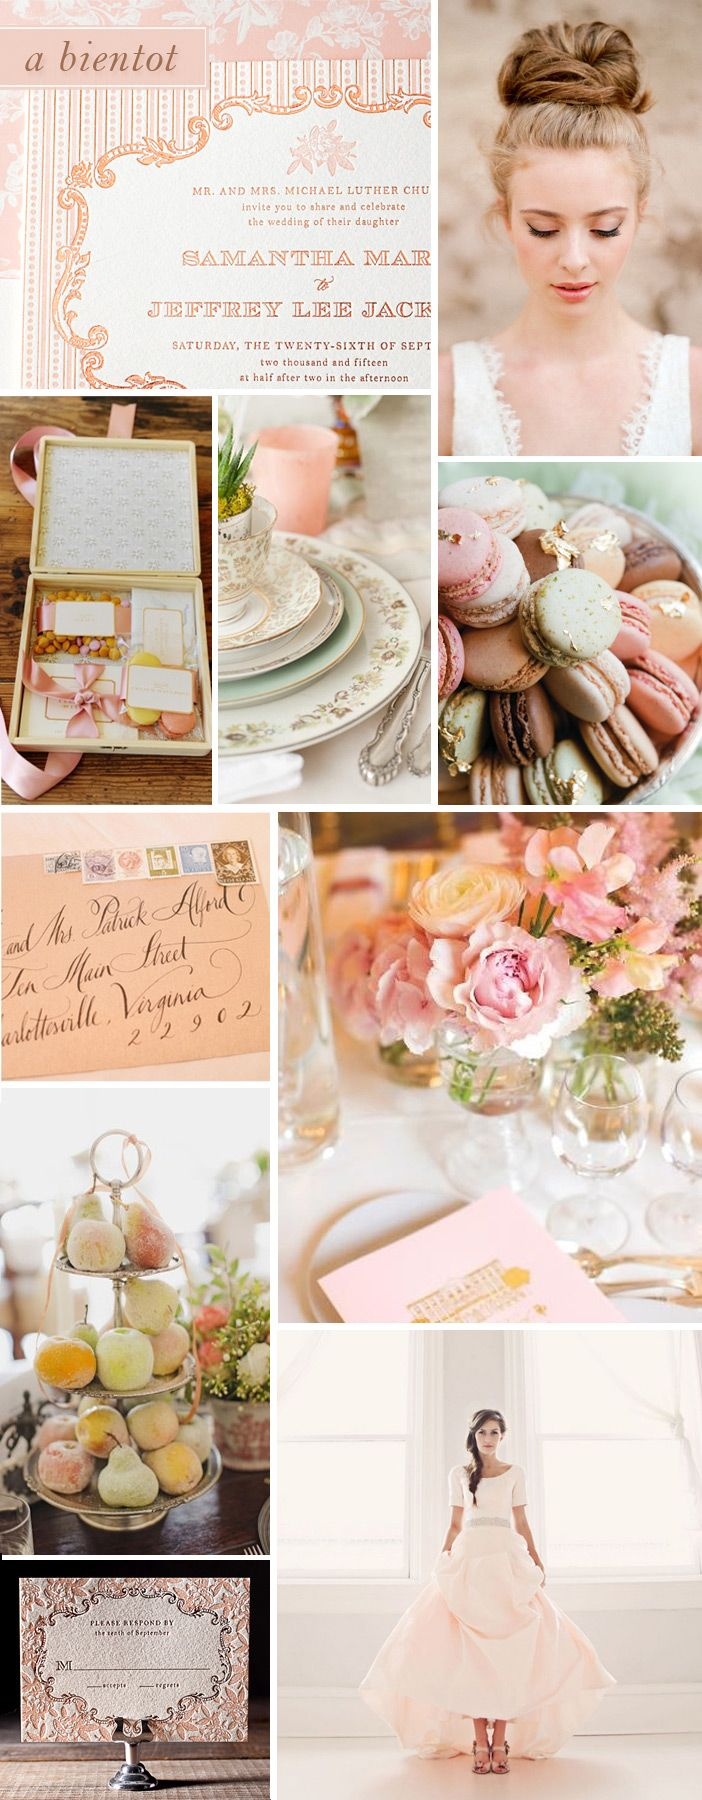 The Inspiration behind A Bientot: A perfectly Parisian invitation design by Bella Figura